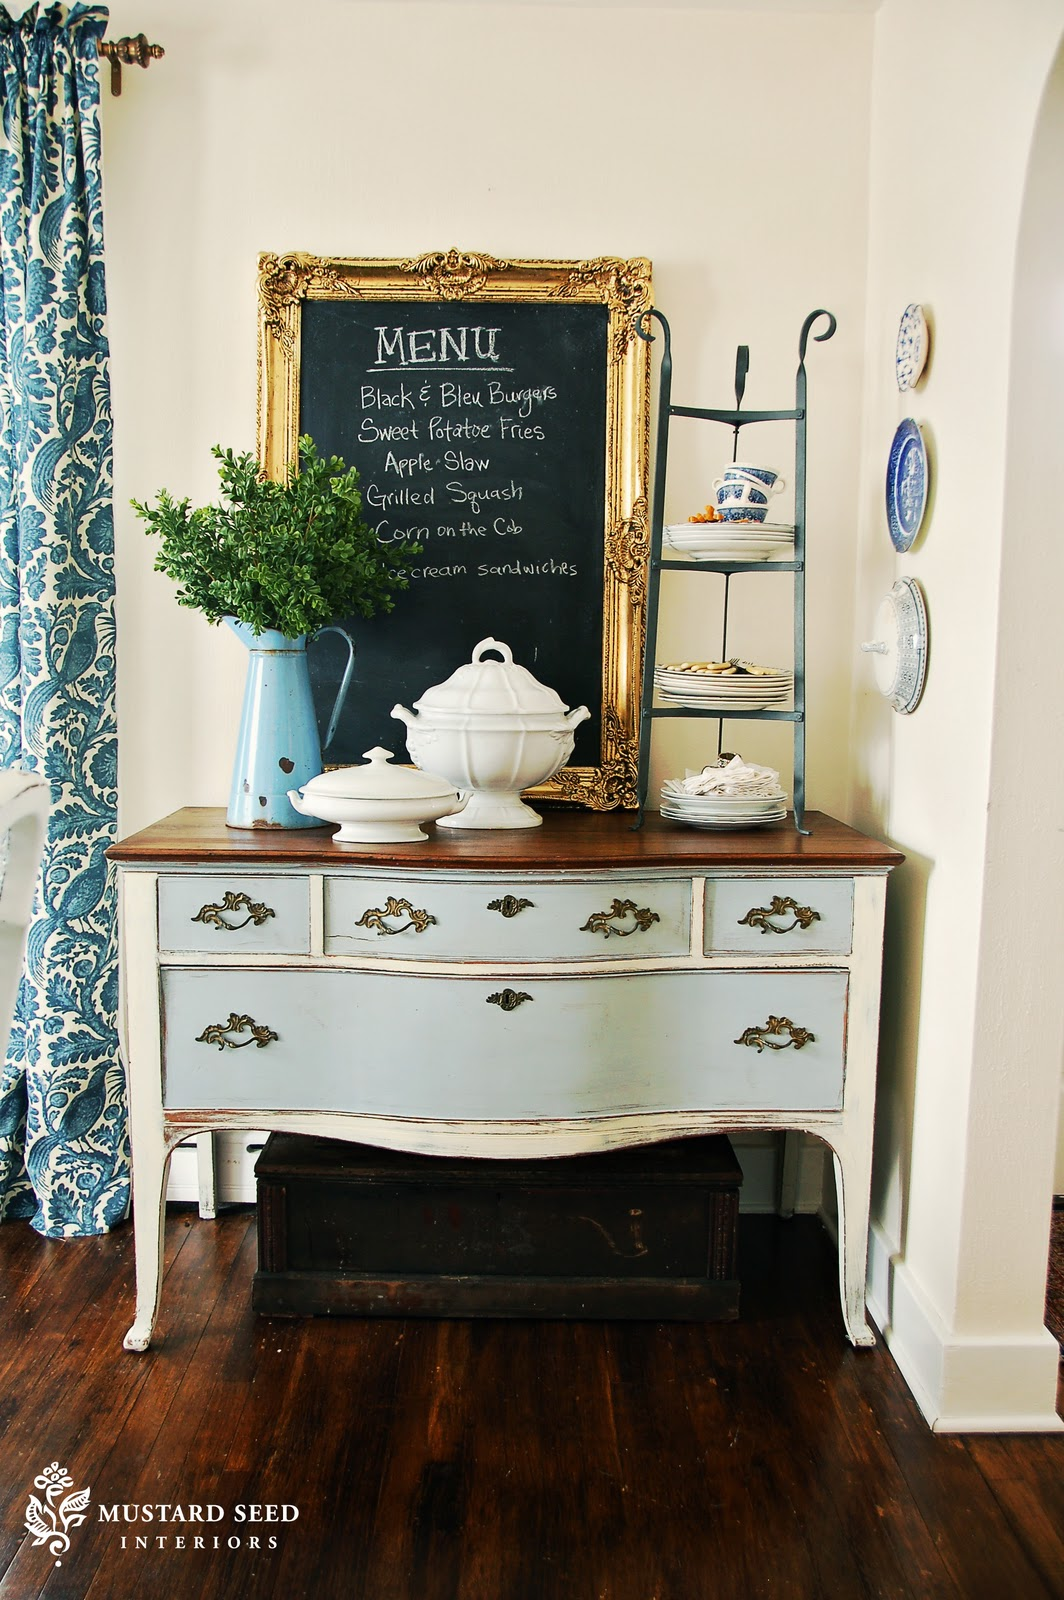 dining room cabinets - before & after - miss mustard seed